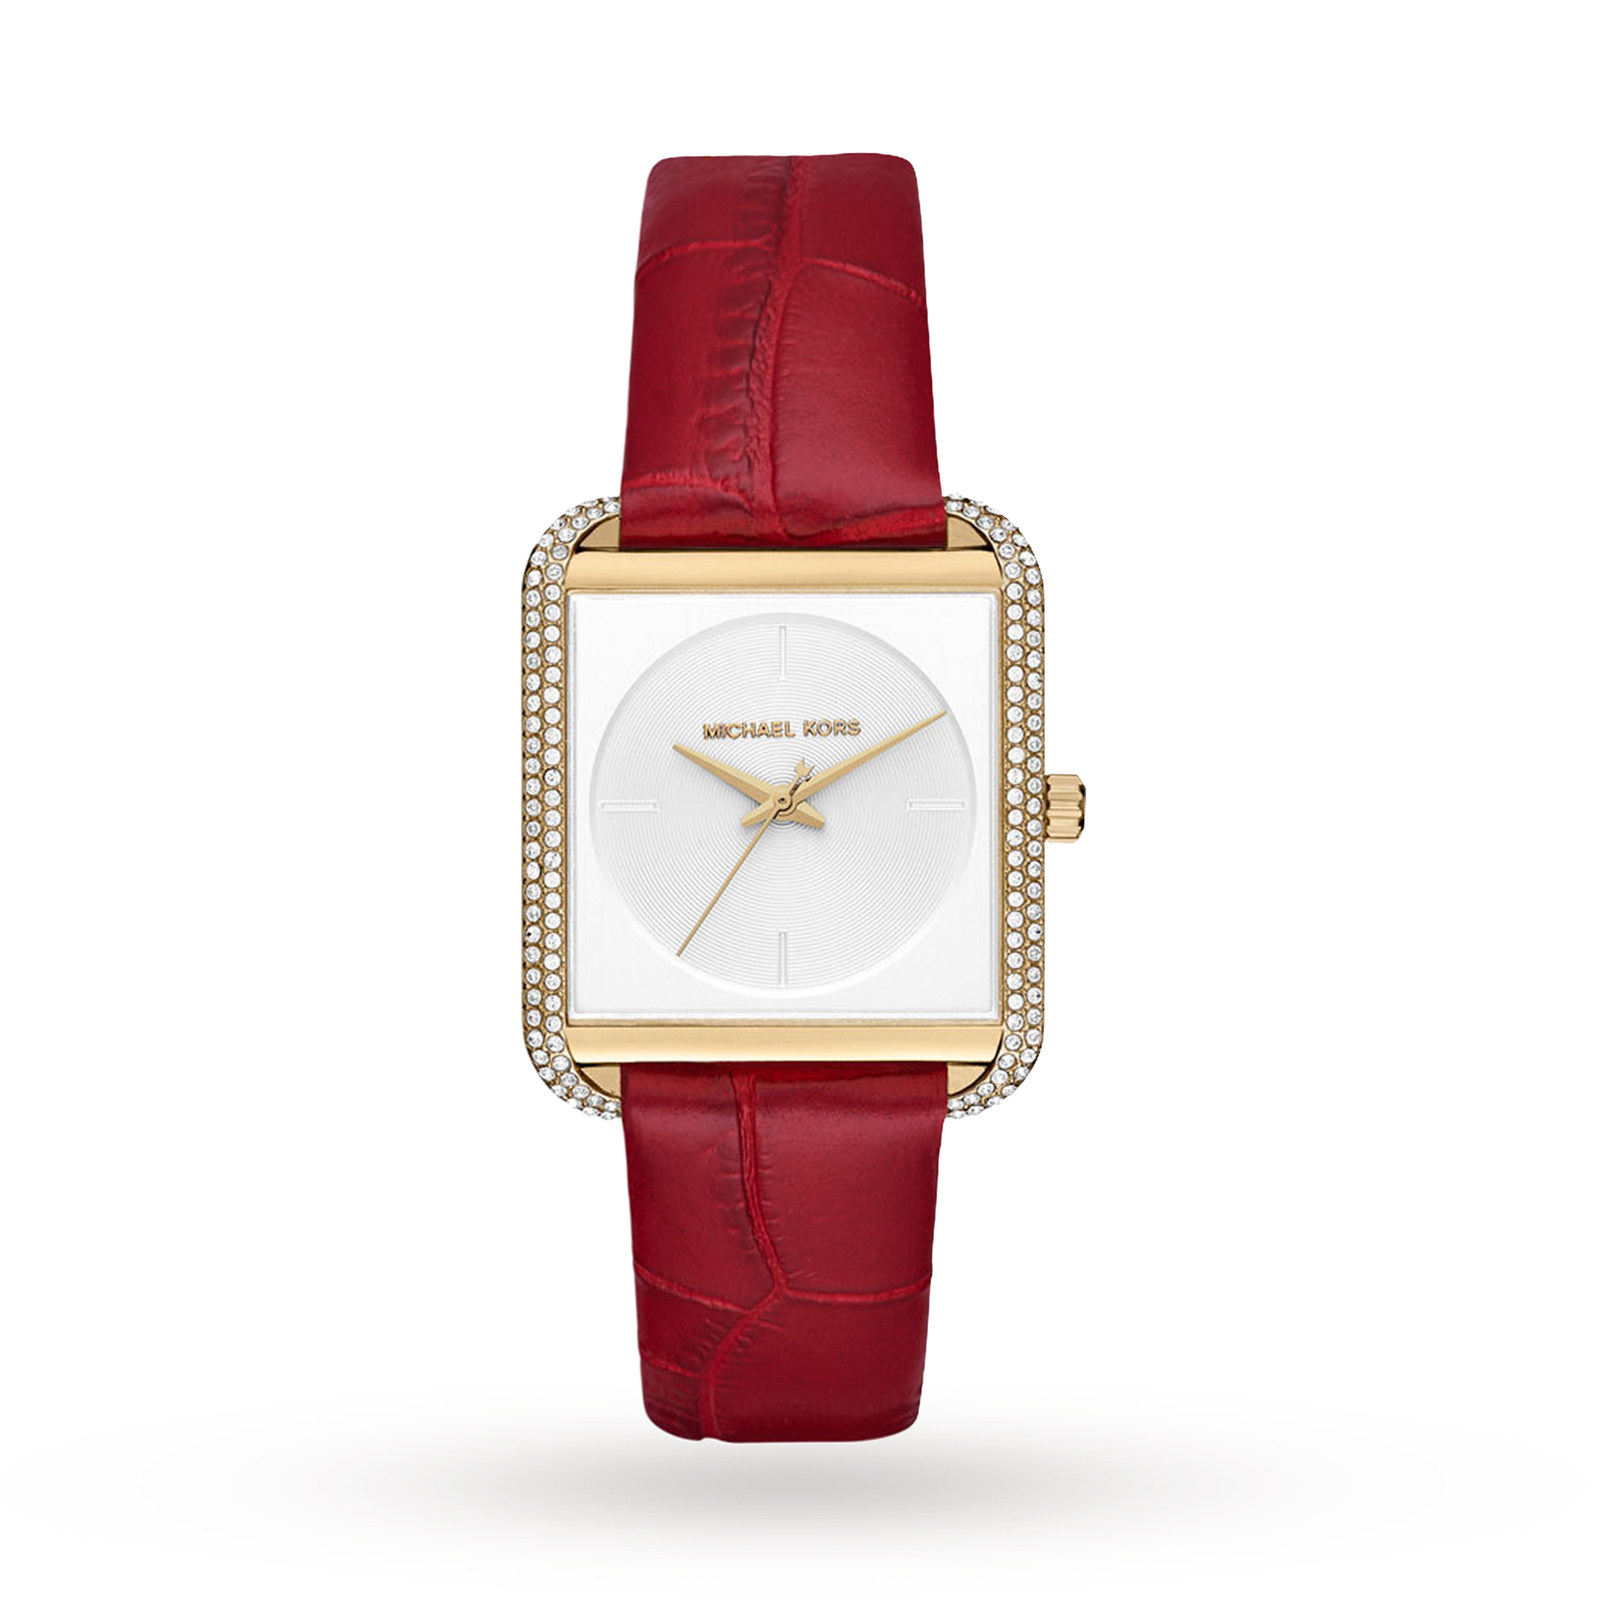 Michael Kors Women's Lake Red Watch